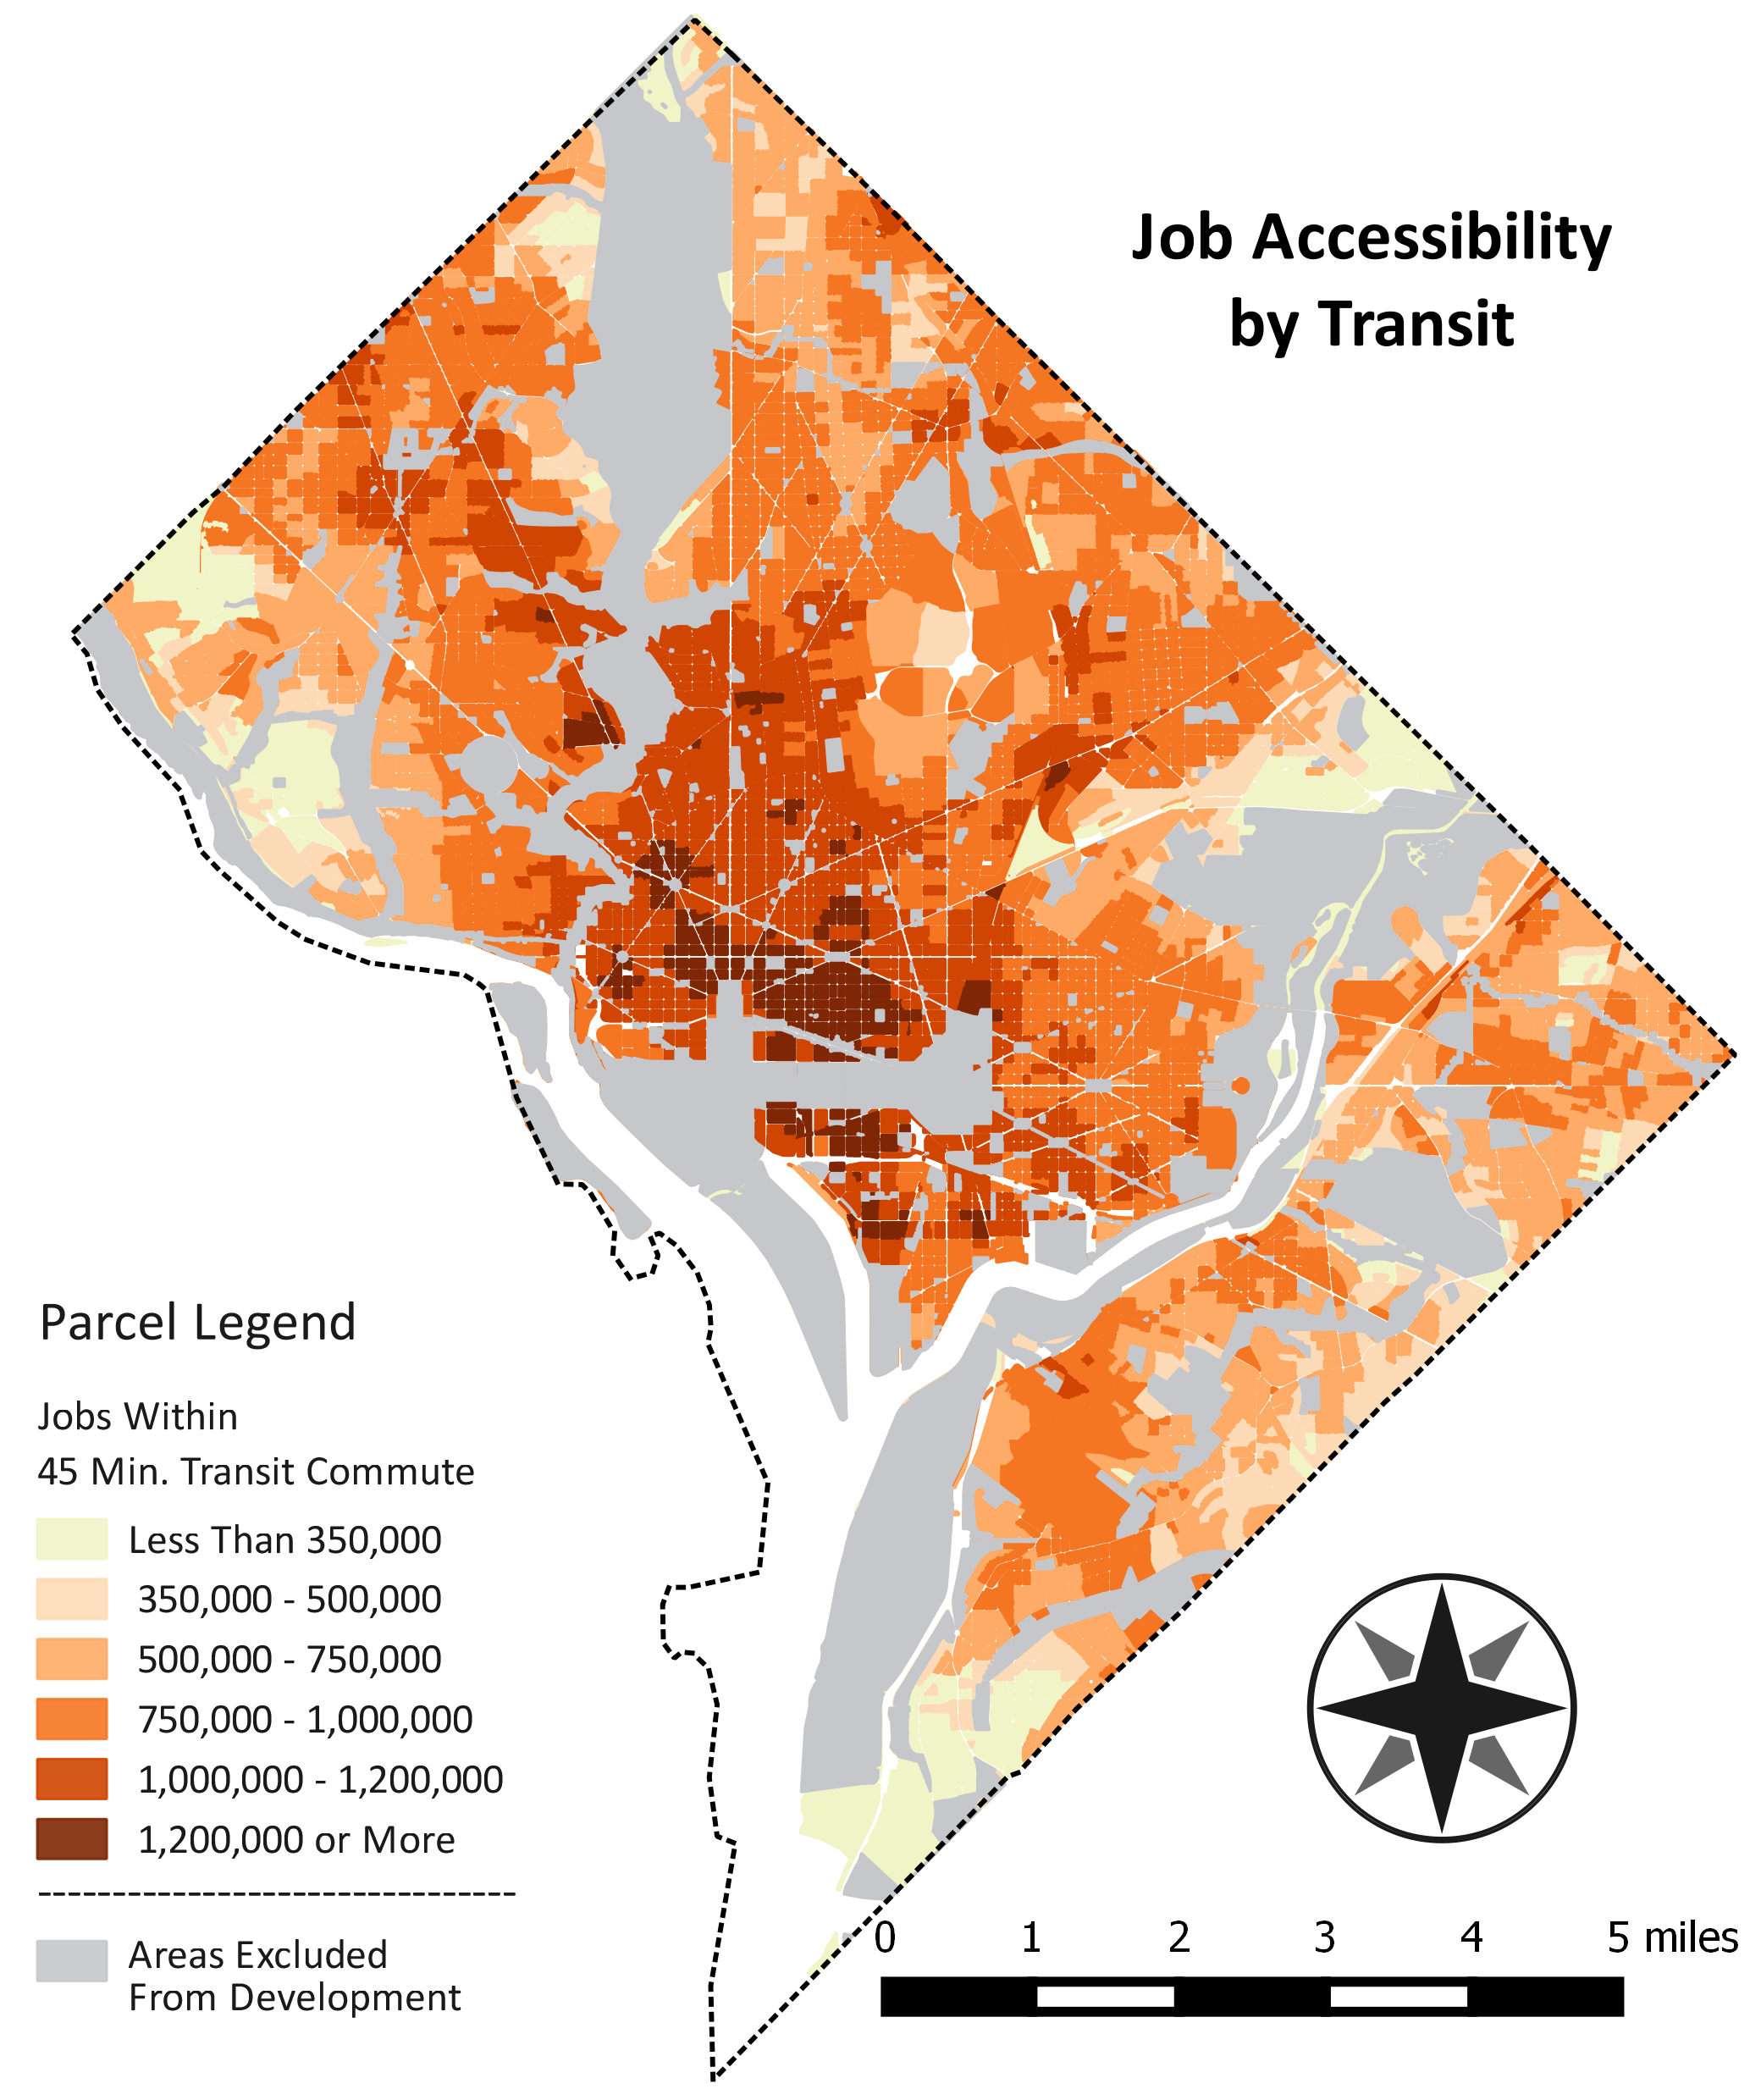 Map of Job Accessibility by Transit